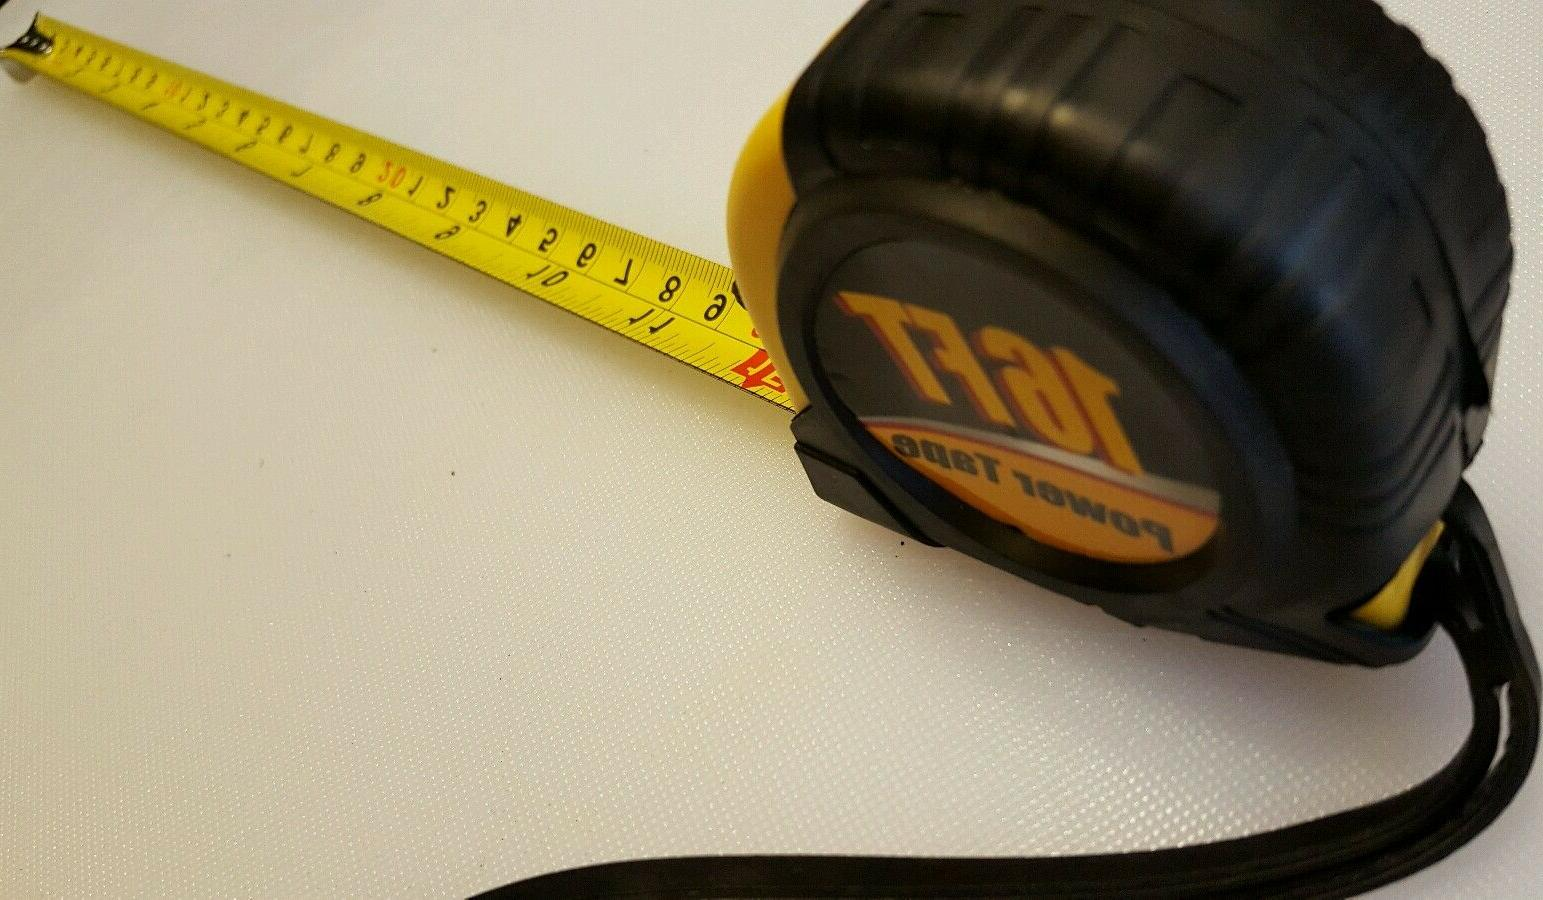 Measuring tape ft x and metric